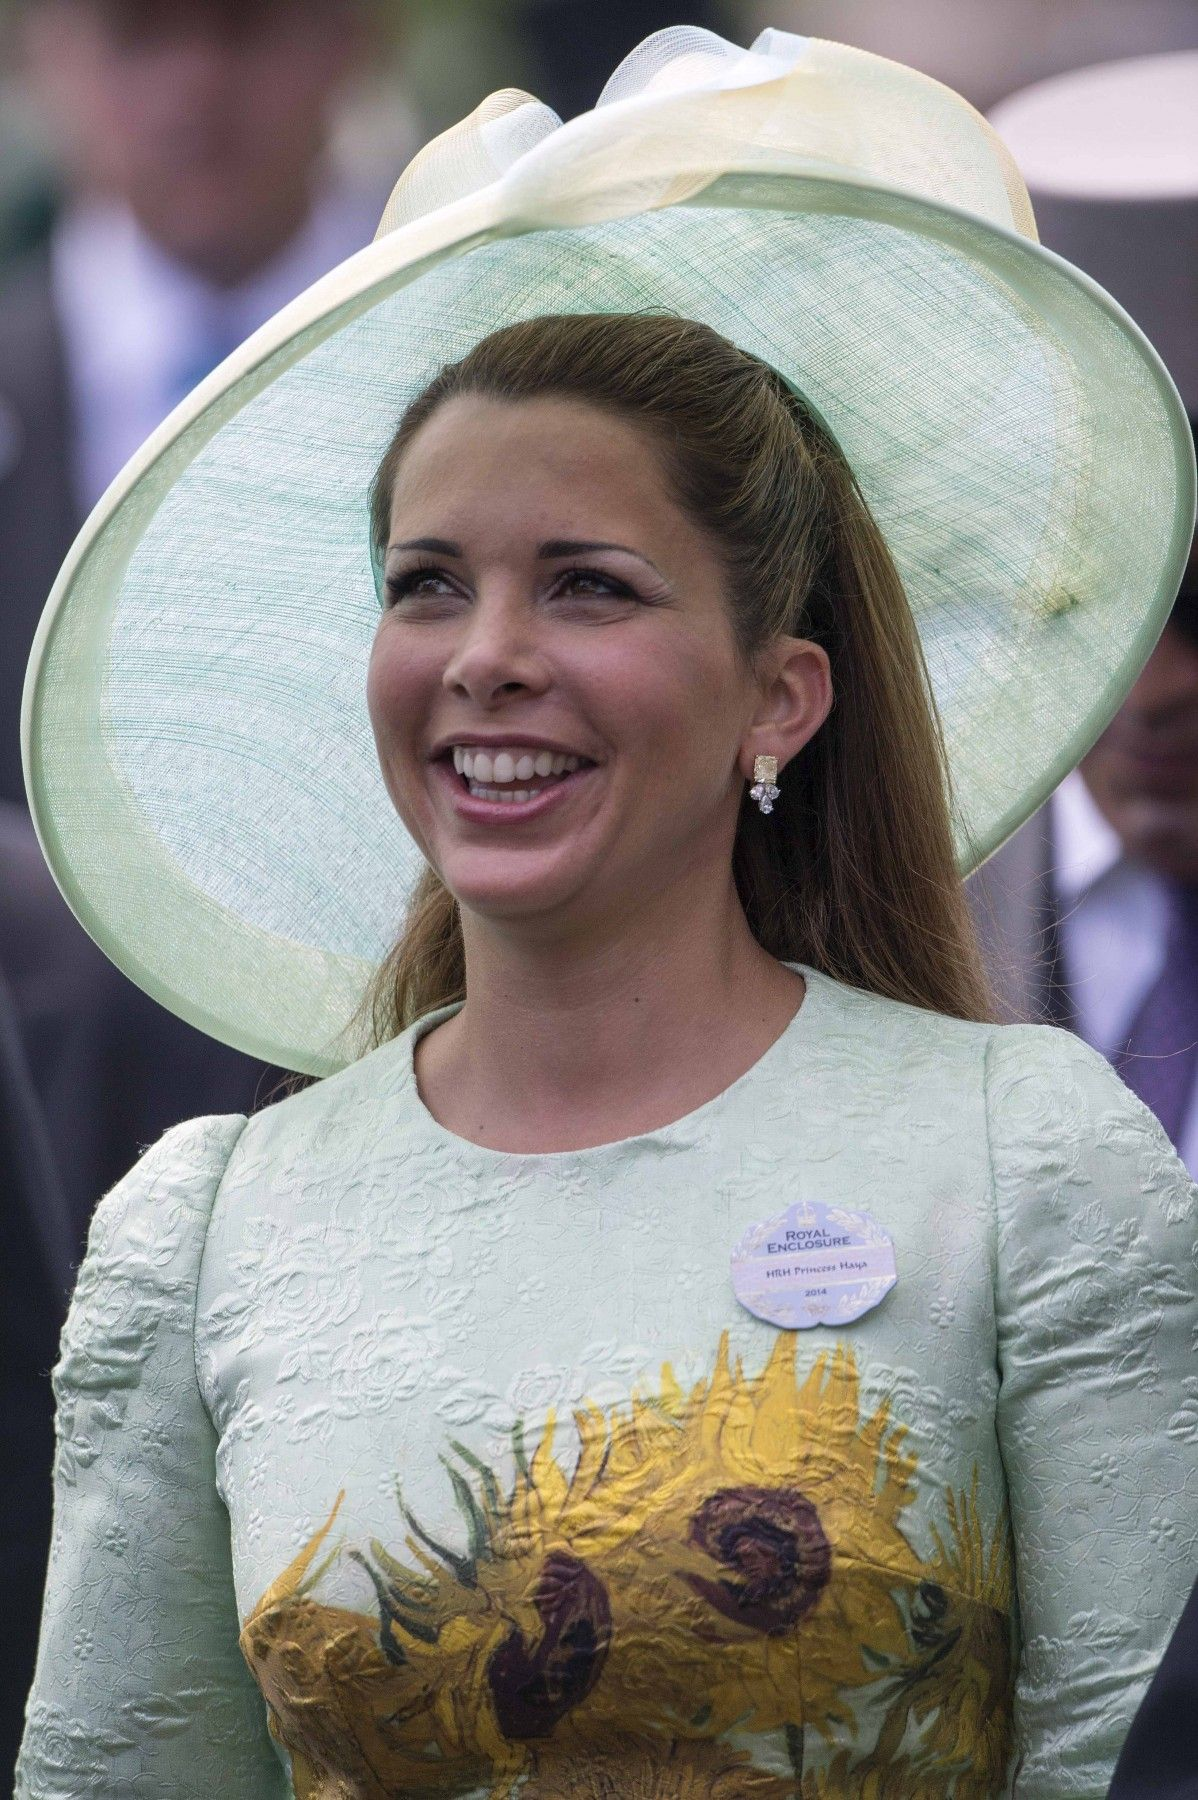 Princess Haya in a very special blue dress with Picasso-like sunflowers on it.